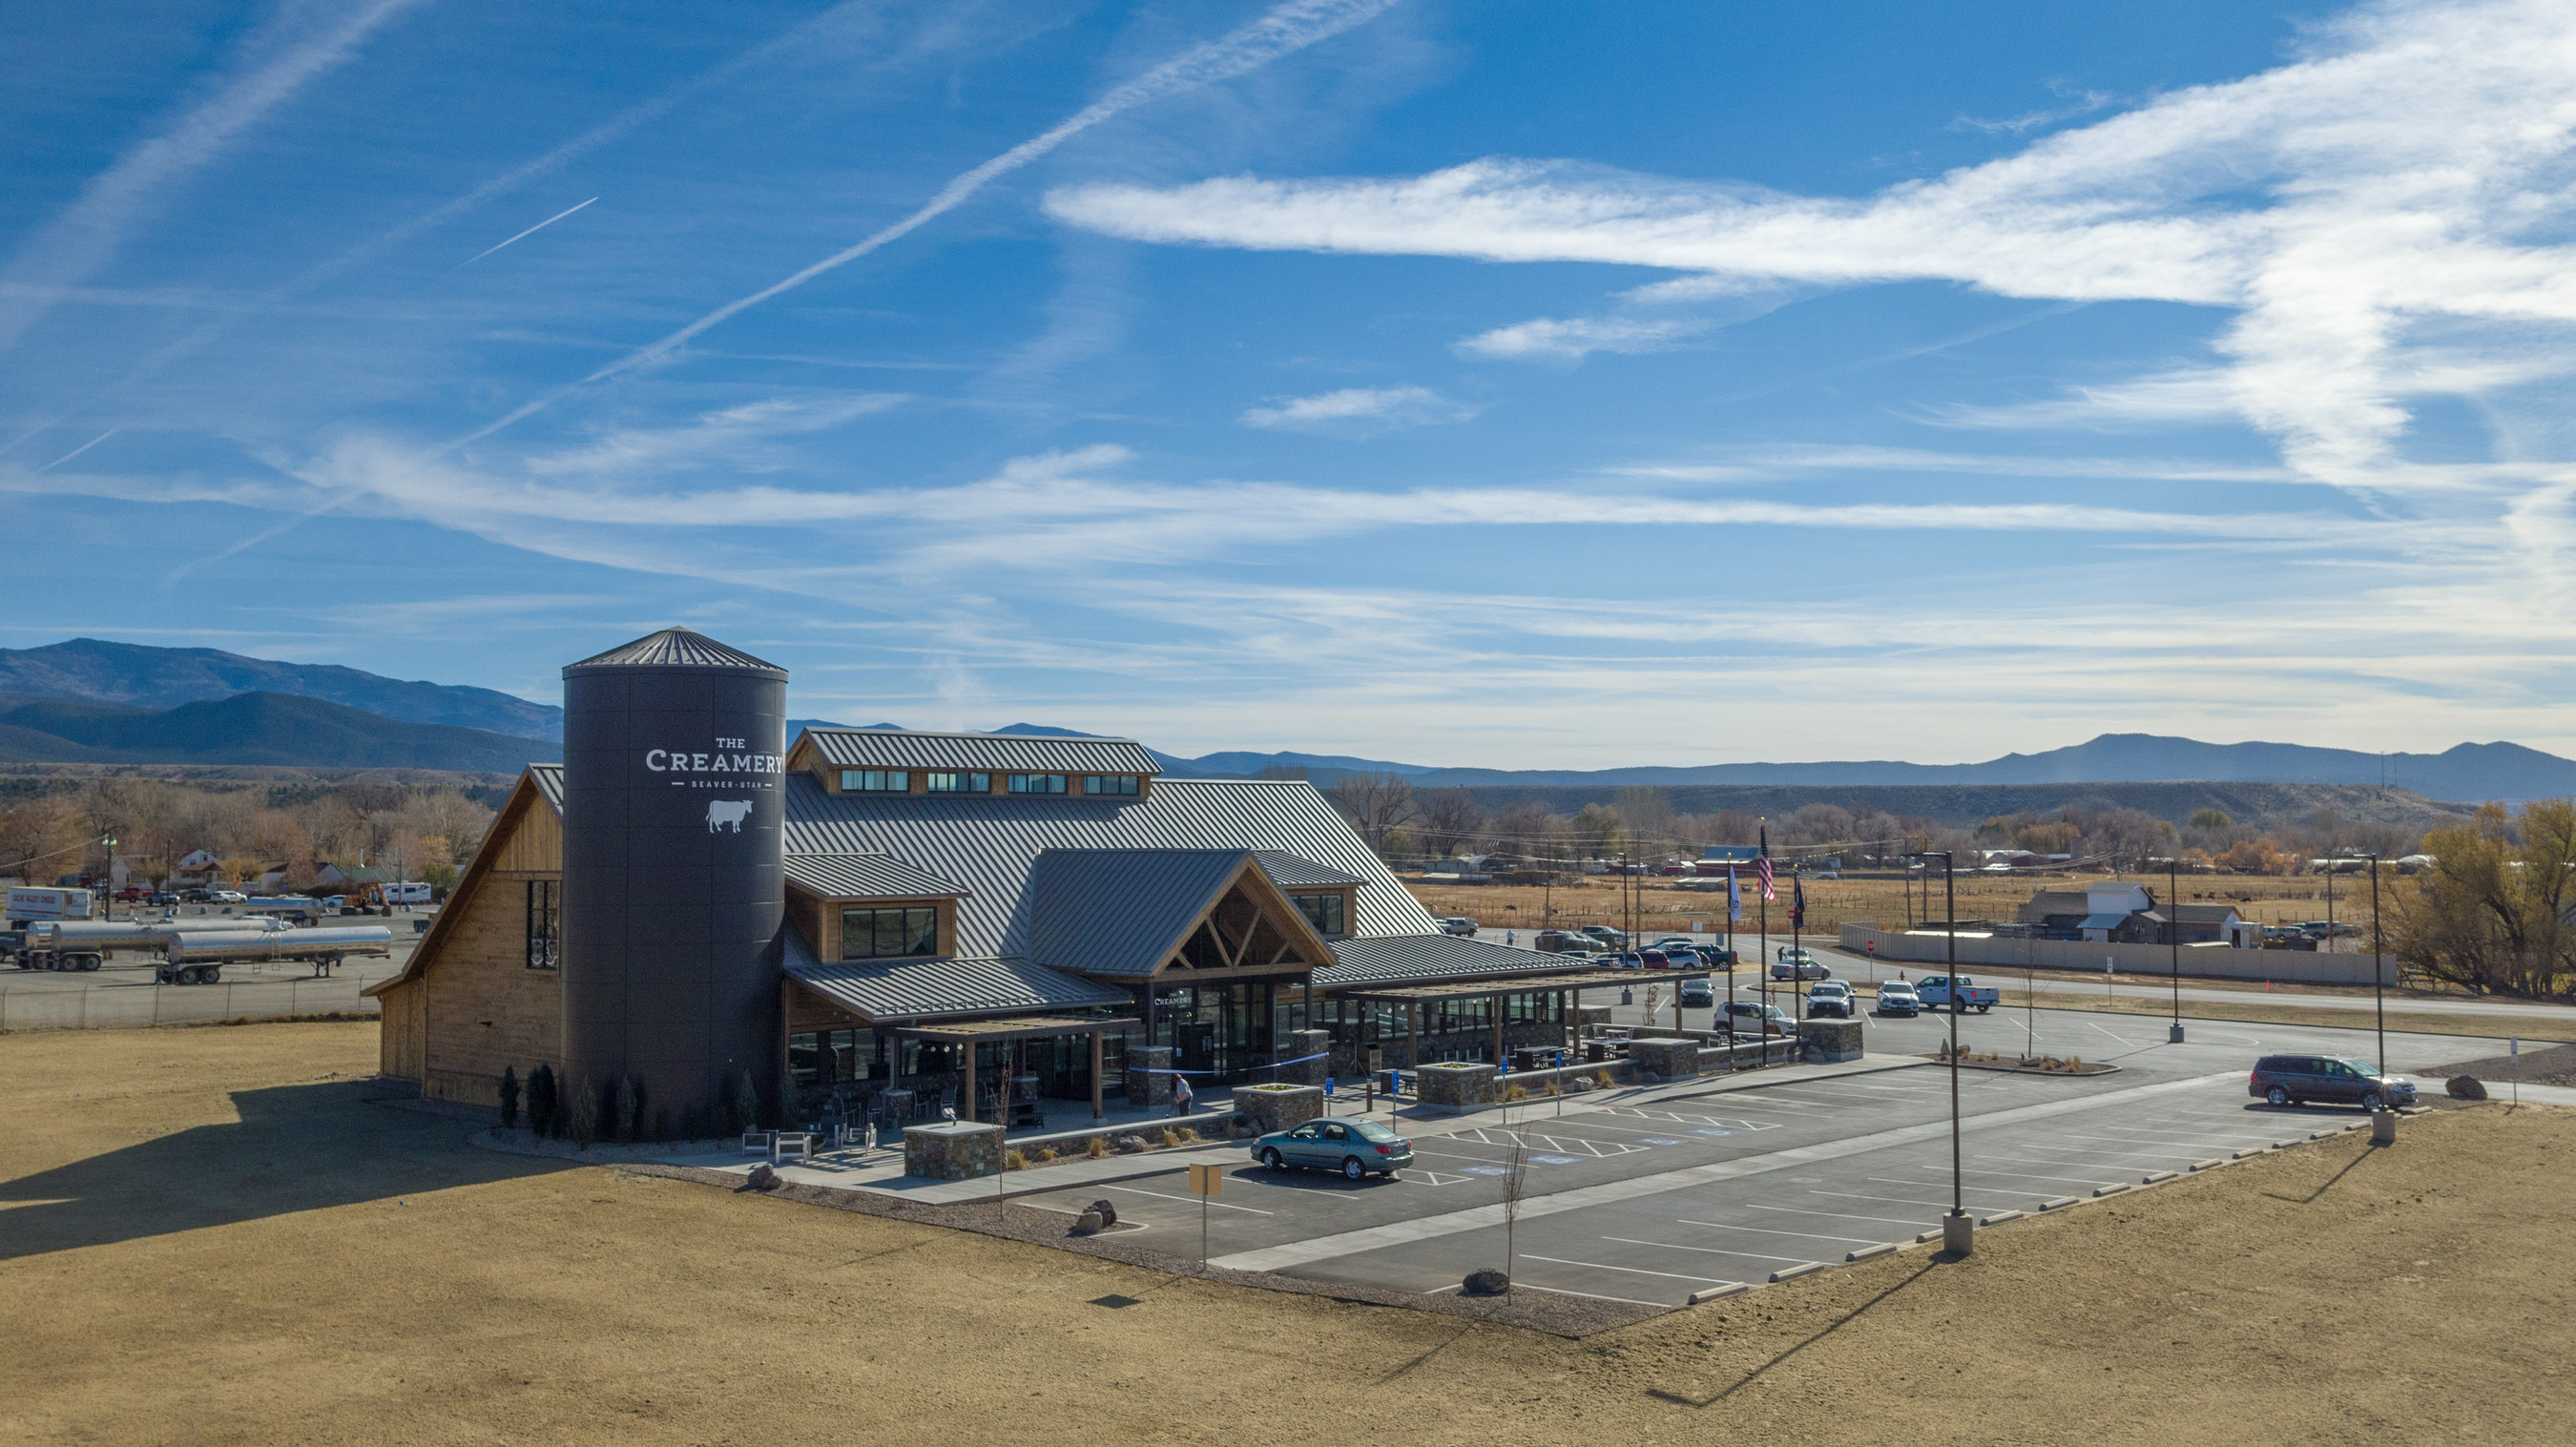 The Creamery is a new, farm-to-table interactive retail store and café located in Beaver, Utah, which is supplied and owned by local family dairy farms. The Creamery features locally produced, farm-fresh cheeses and its famous cheese curds from Utah-area dairy farmers. Created by Dairy Farmers of America (DFA), a national dairy cooperative owned by family farmers, The Creamery opens to the public on Saturday, November 16. For more information, visit thecreameryutah.com (PRNewsfoto/Dairy Farmers of America)